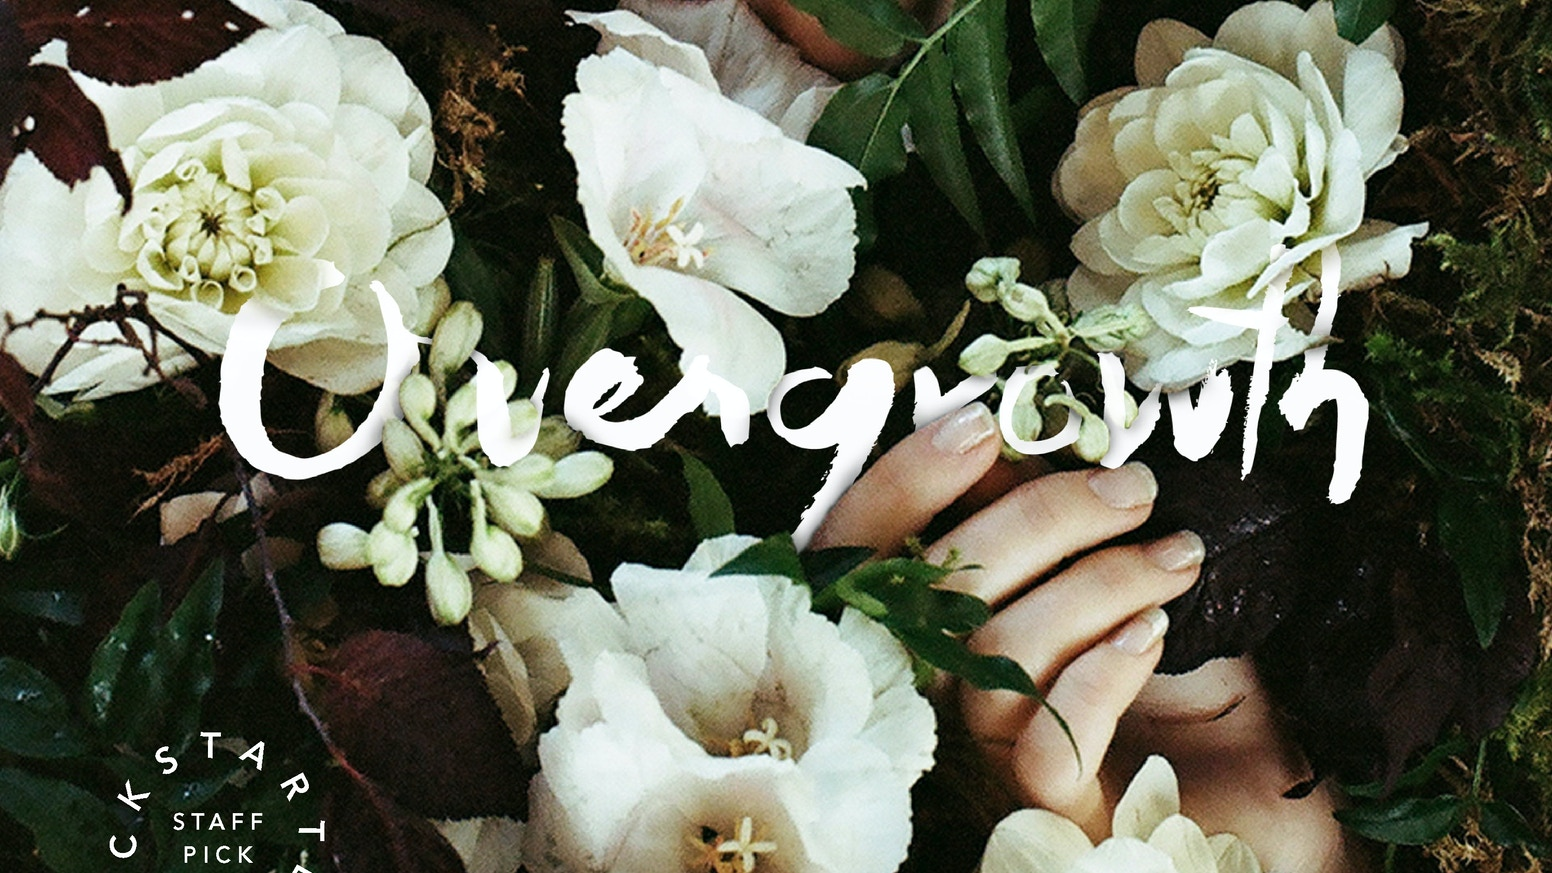 OVERGROWTH is an artistic collaboration and earnest search for beauty expressed through humans and nature.